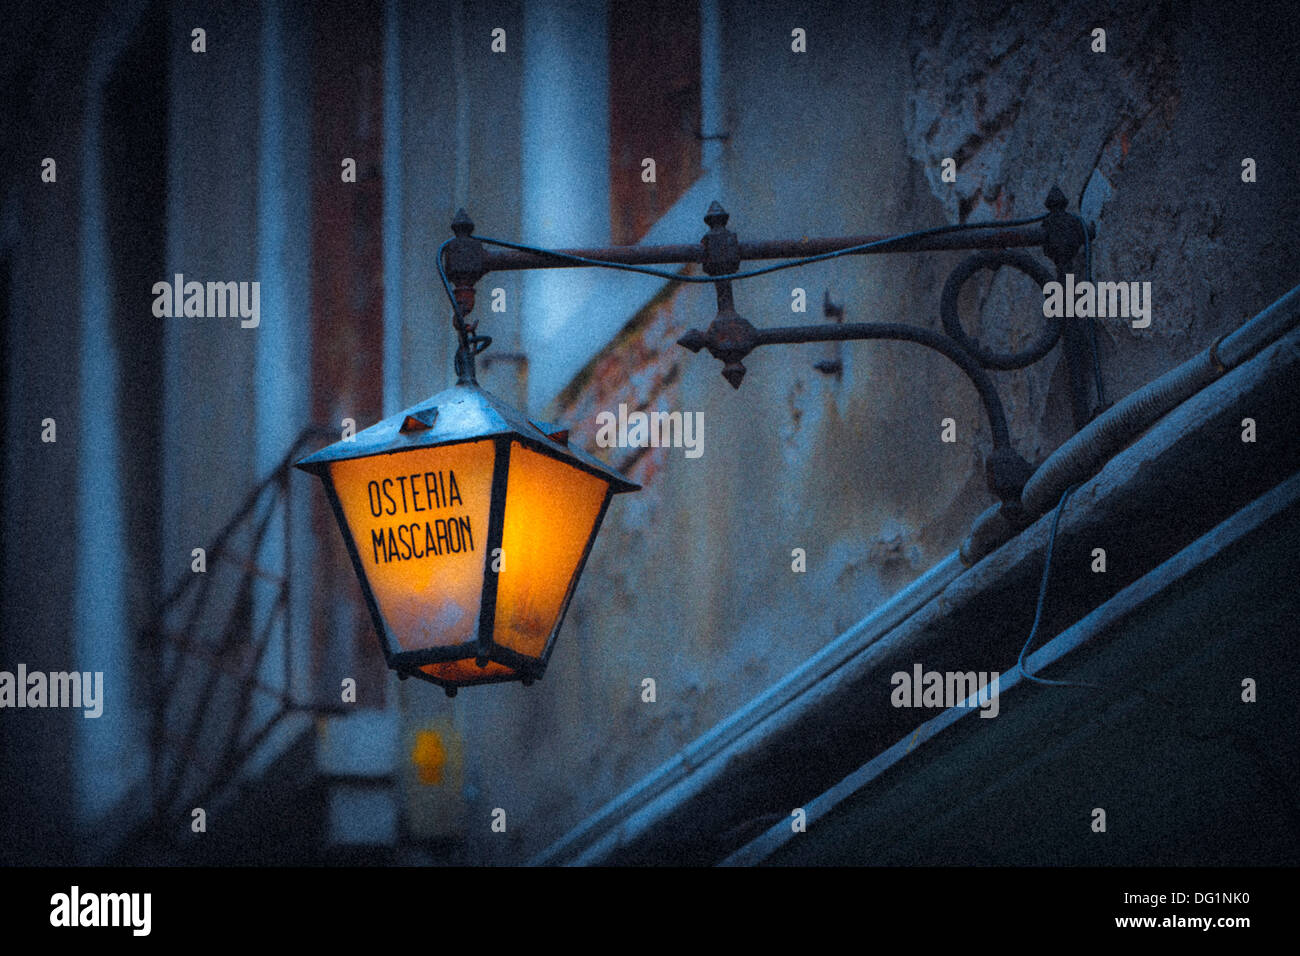 Mystical view of a glowing lantern, Venice, Italy, Europe - Stock Image